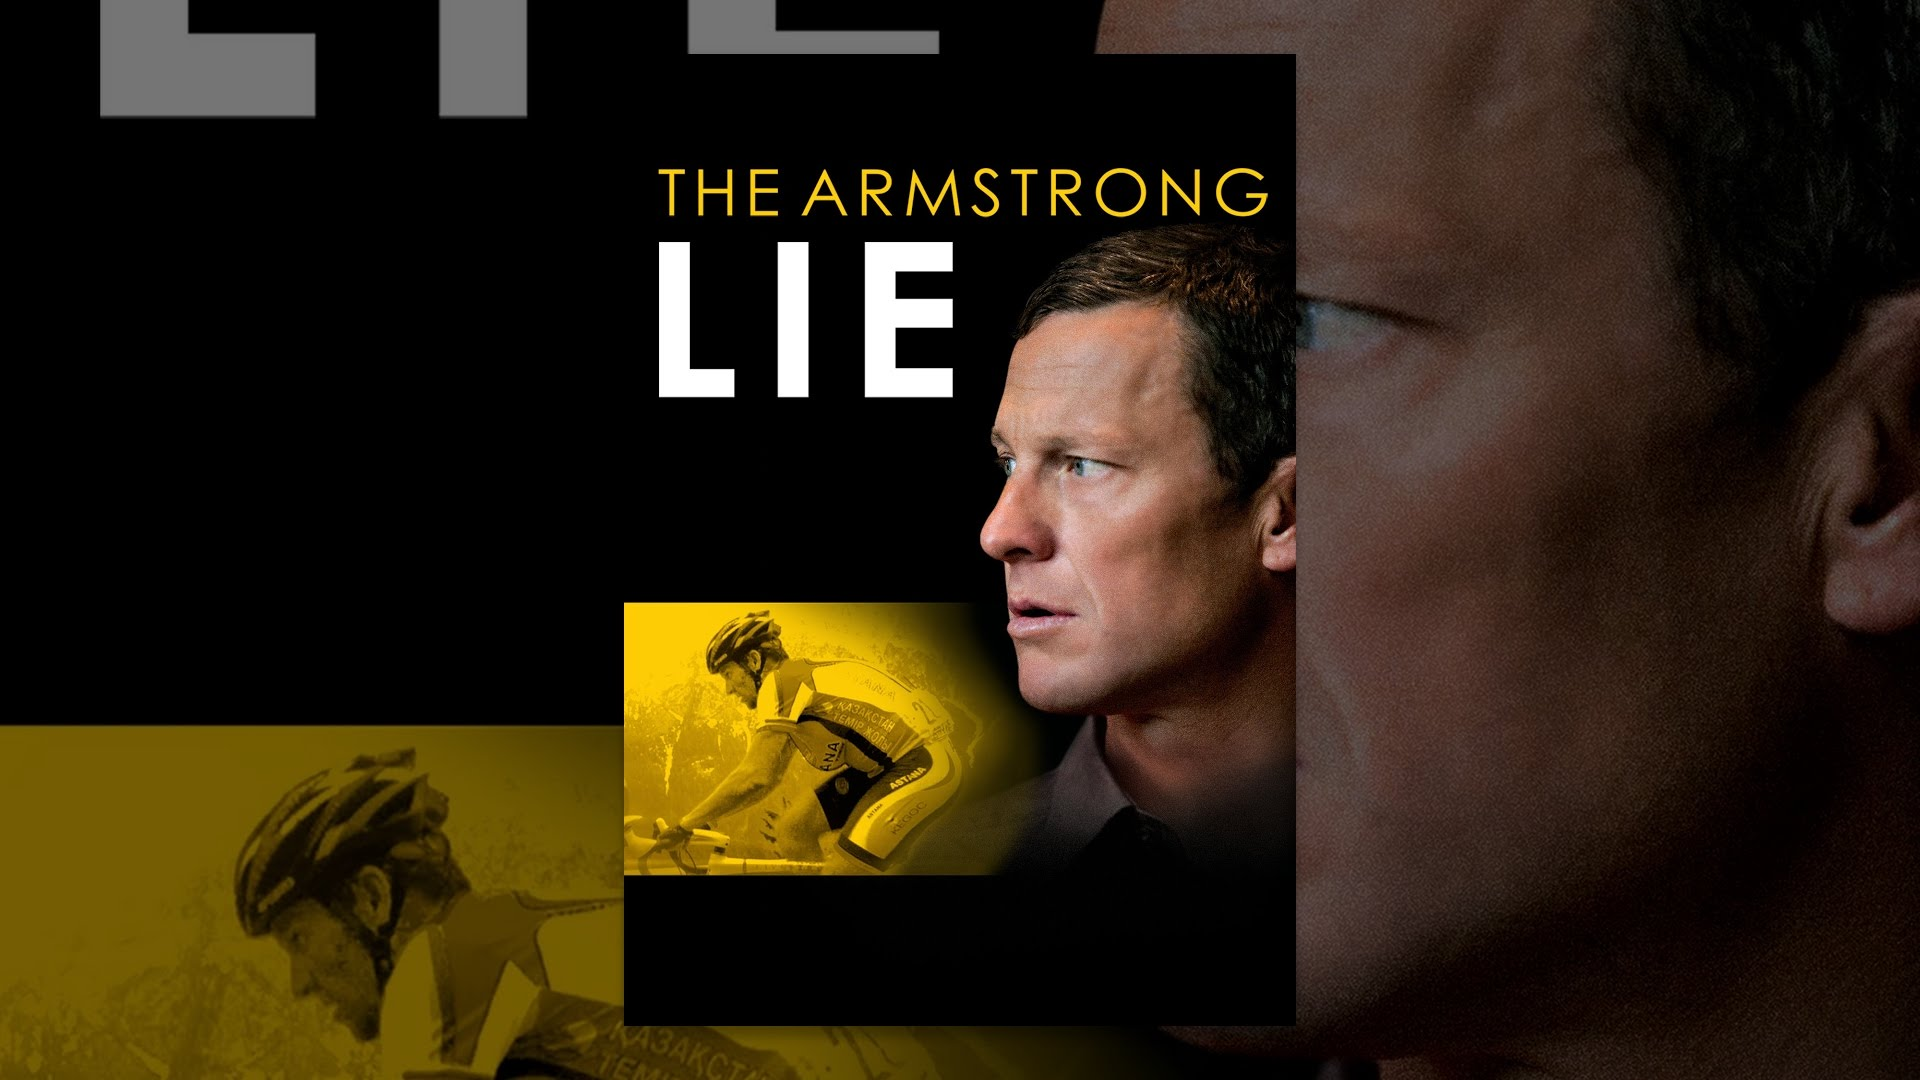 'Fk you': Lance Armstrong documentary gets off to quite the start